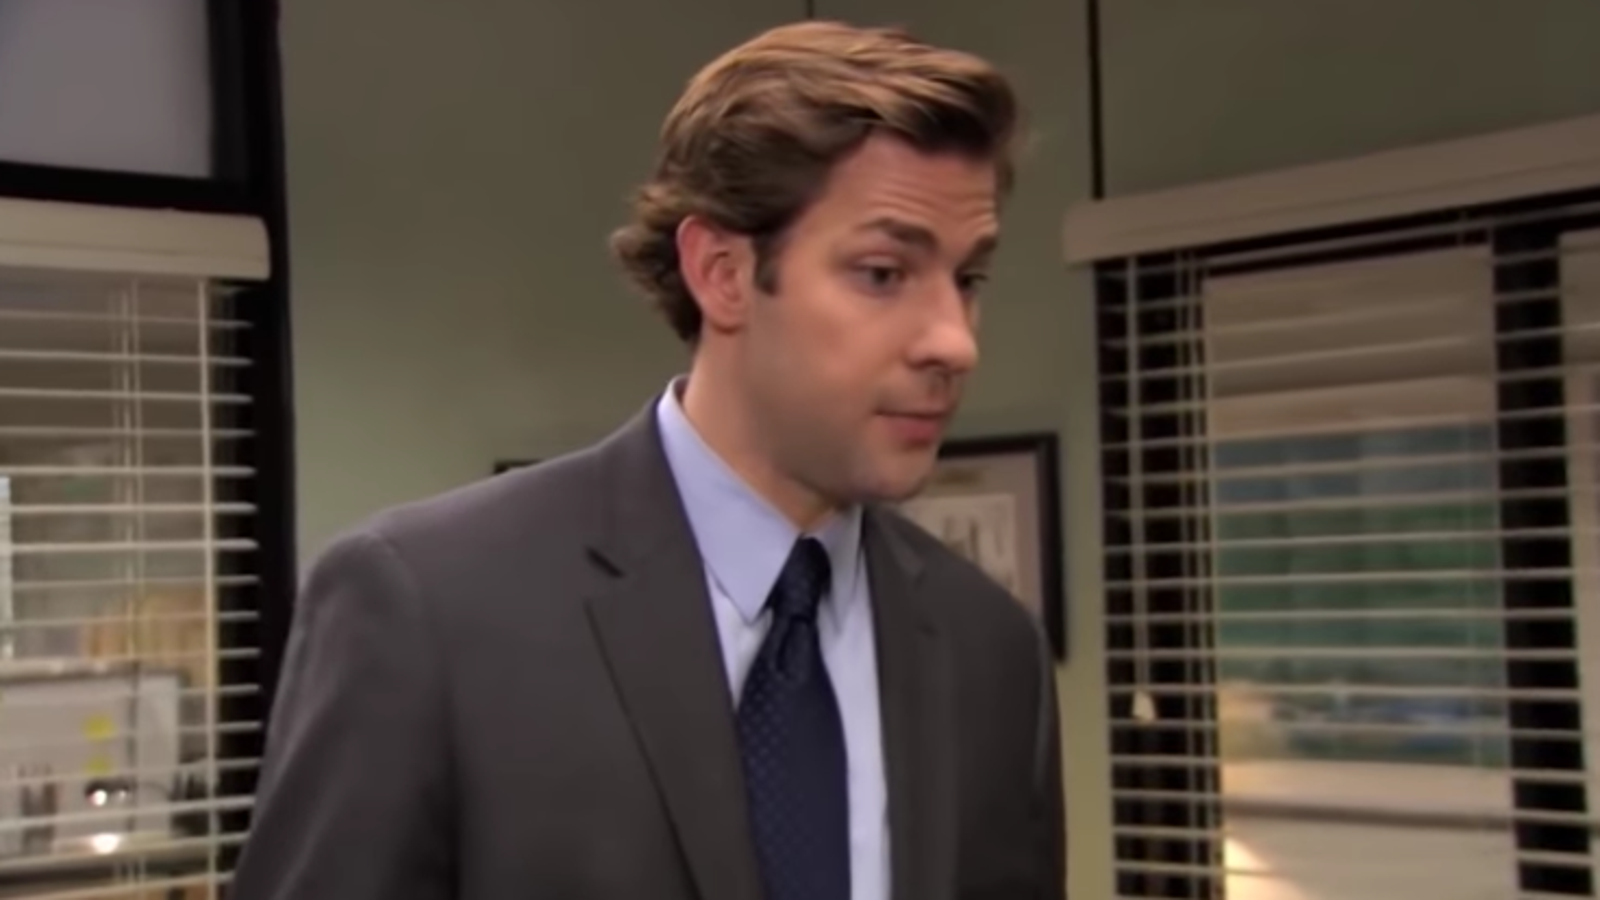 Let's trace the evolution of The Office's Jim Halpert via